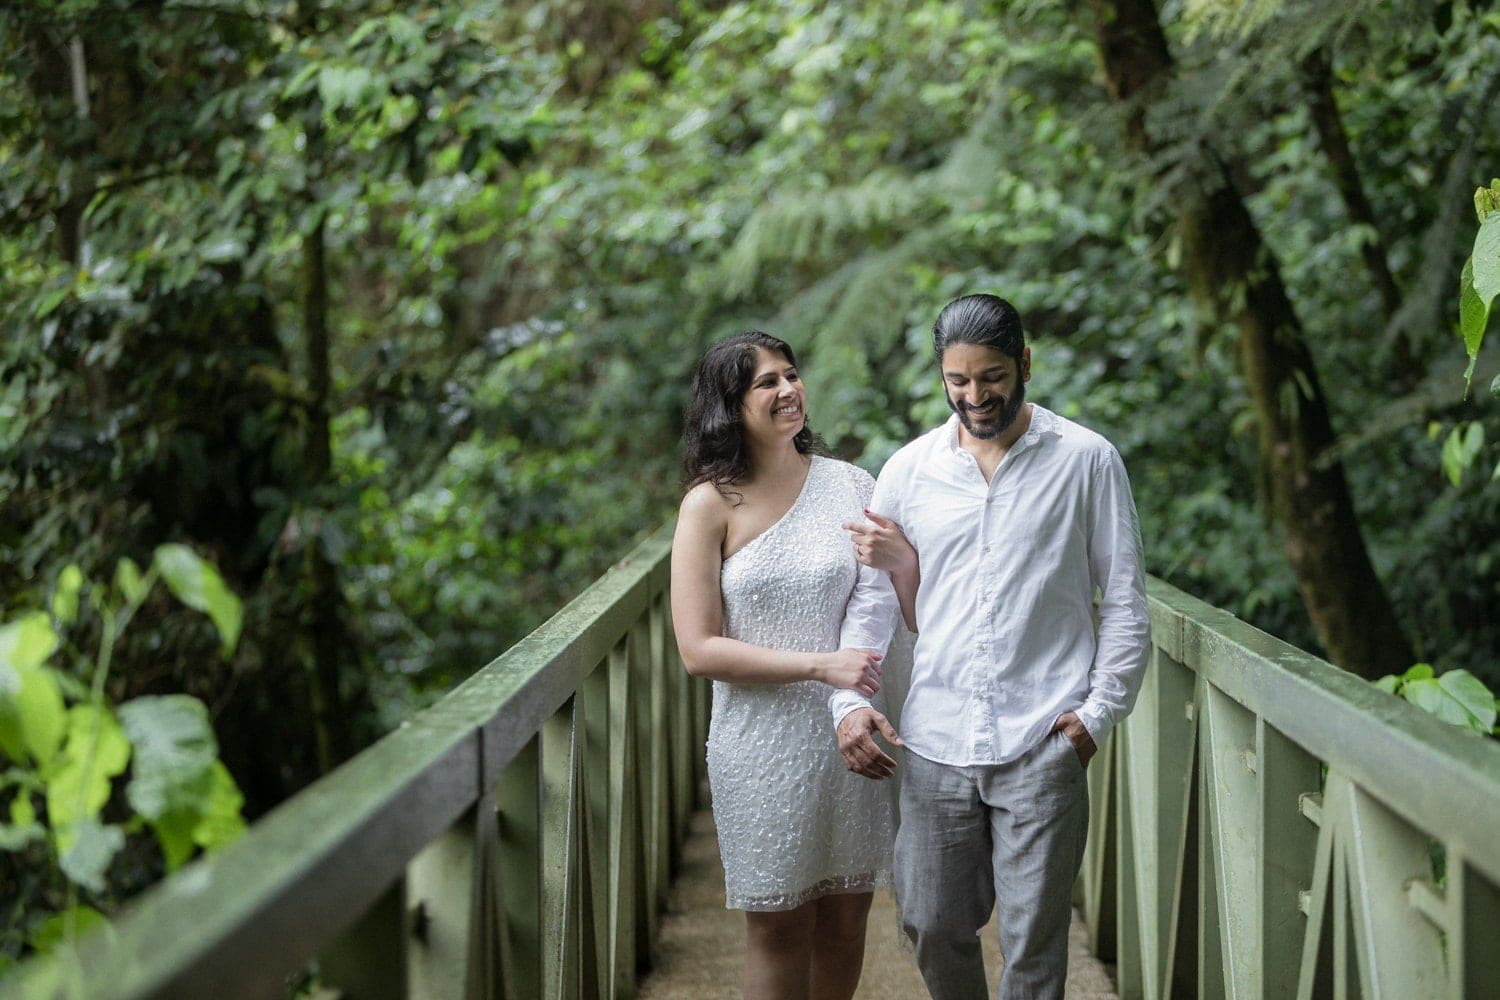 Amberene-Farhan-Engagement-Photos-La-Fortuna-Waterfall-27.jpg